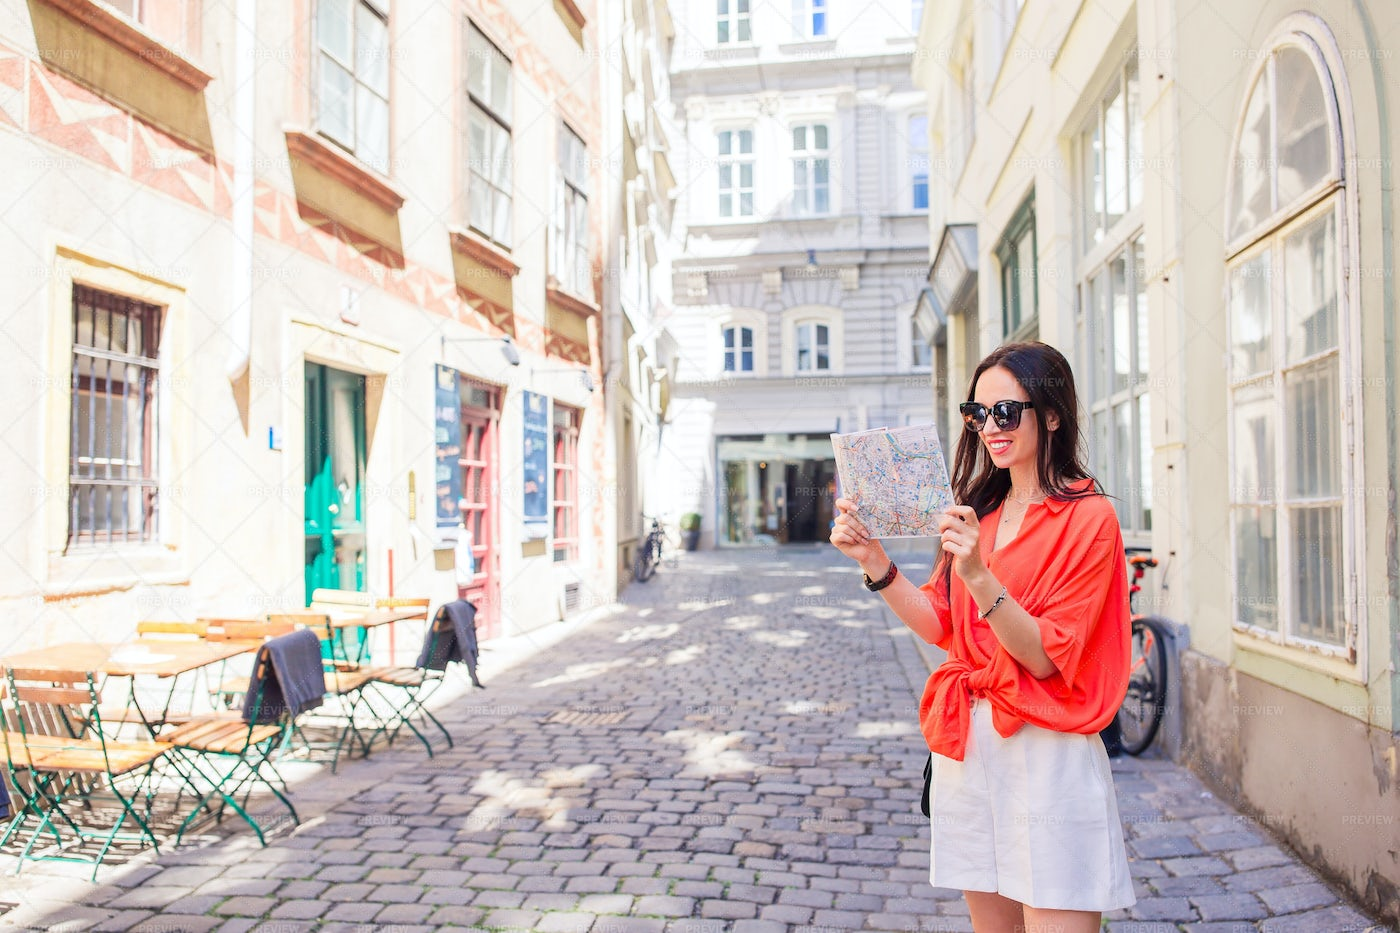 Holding A Map In Vienna: Stock Photos